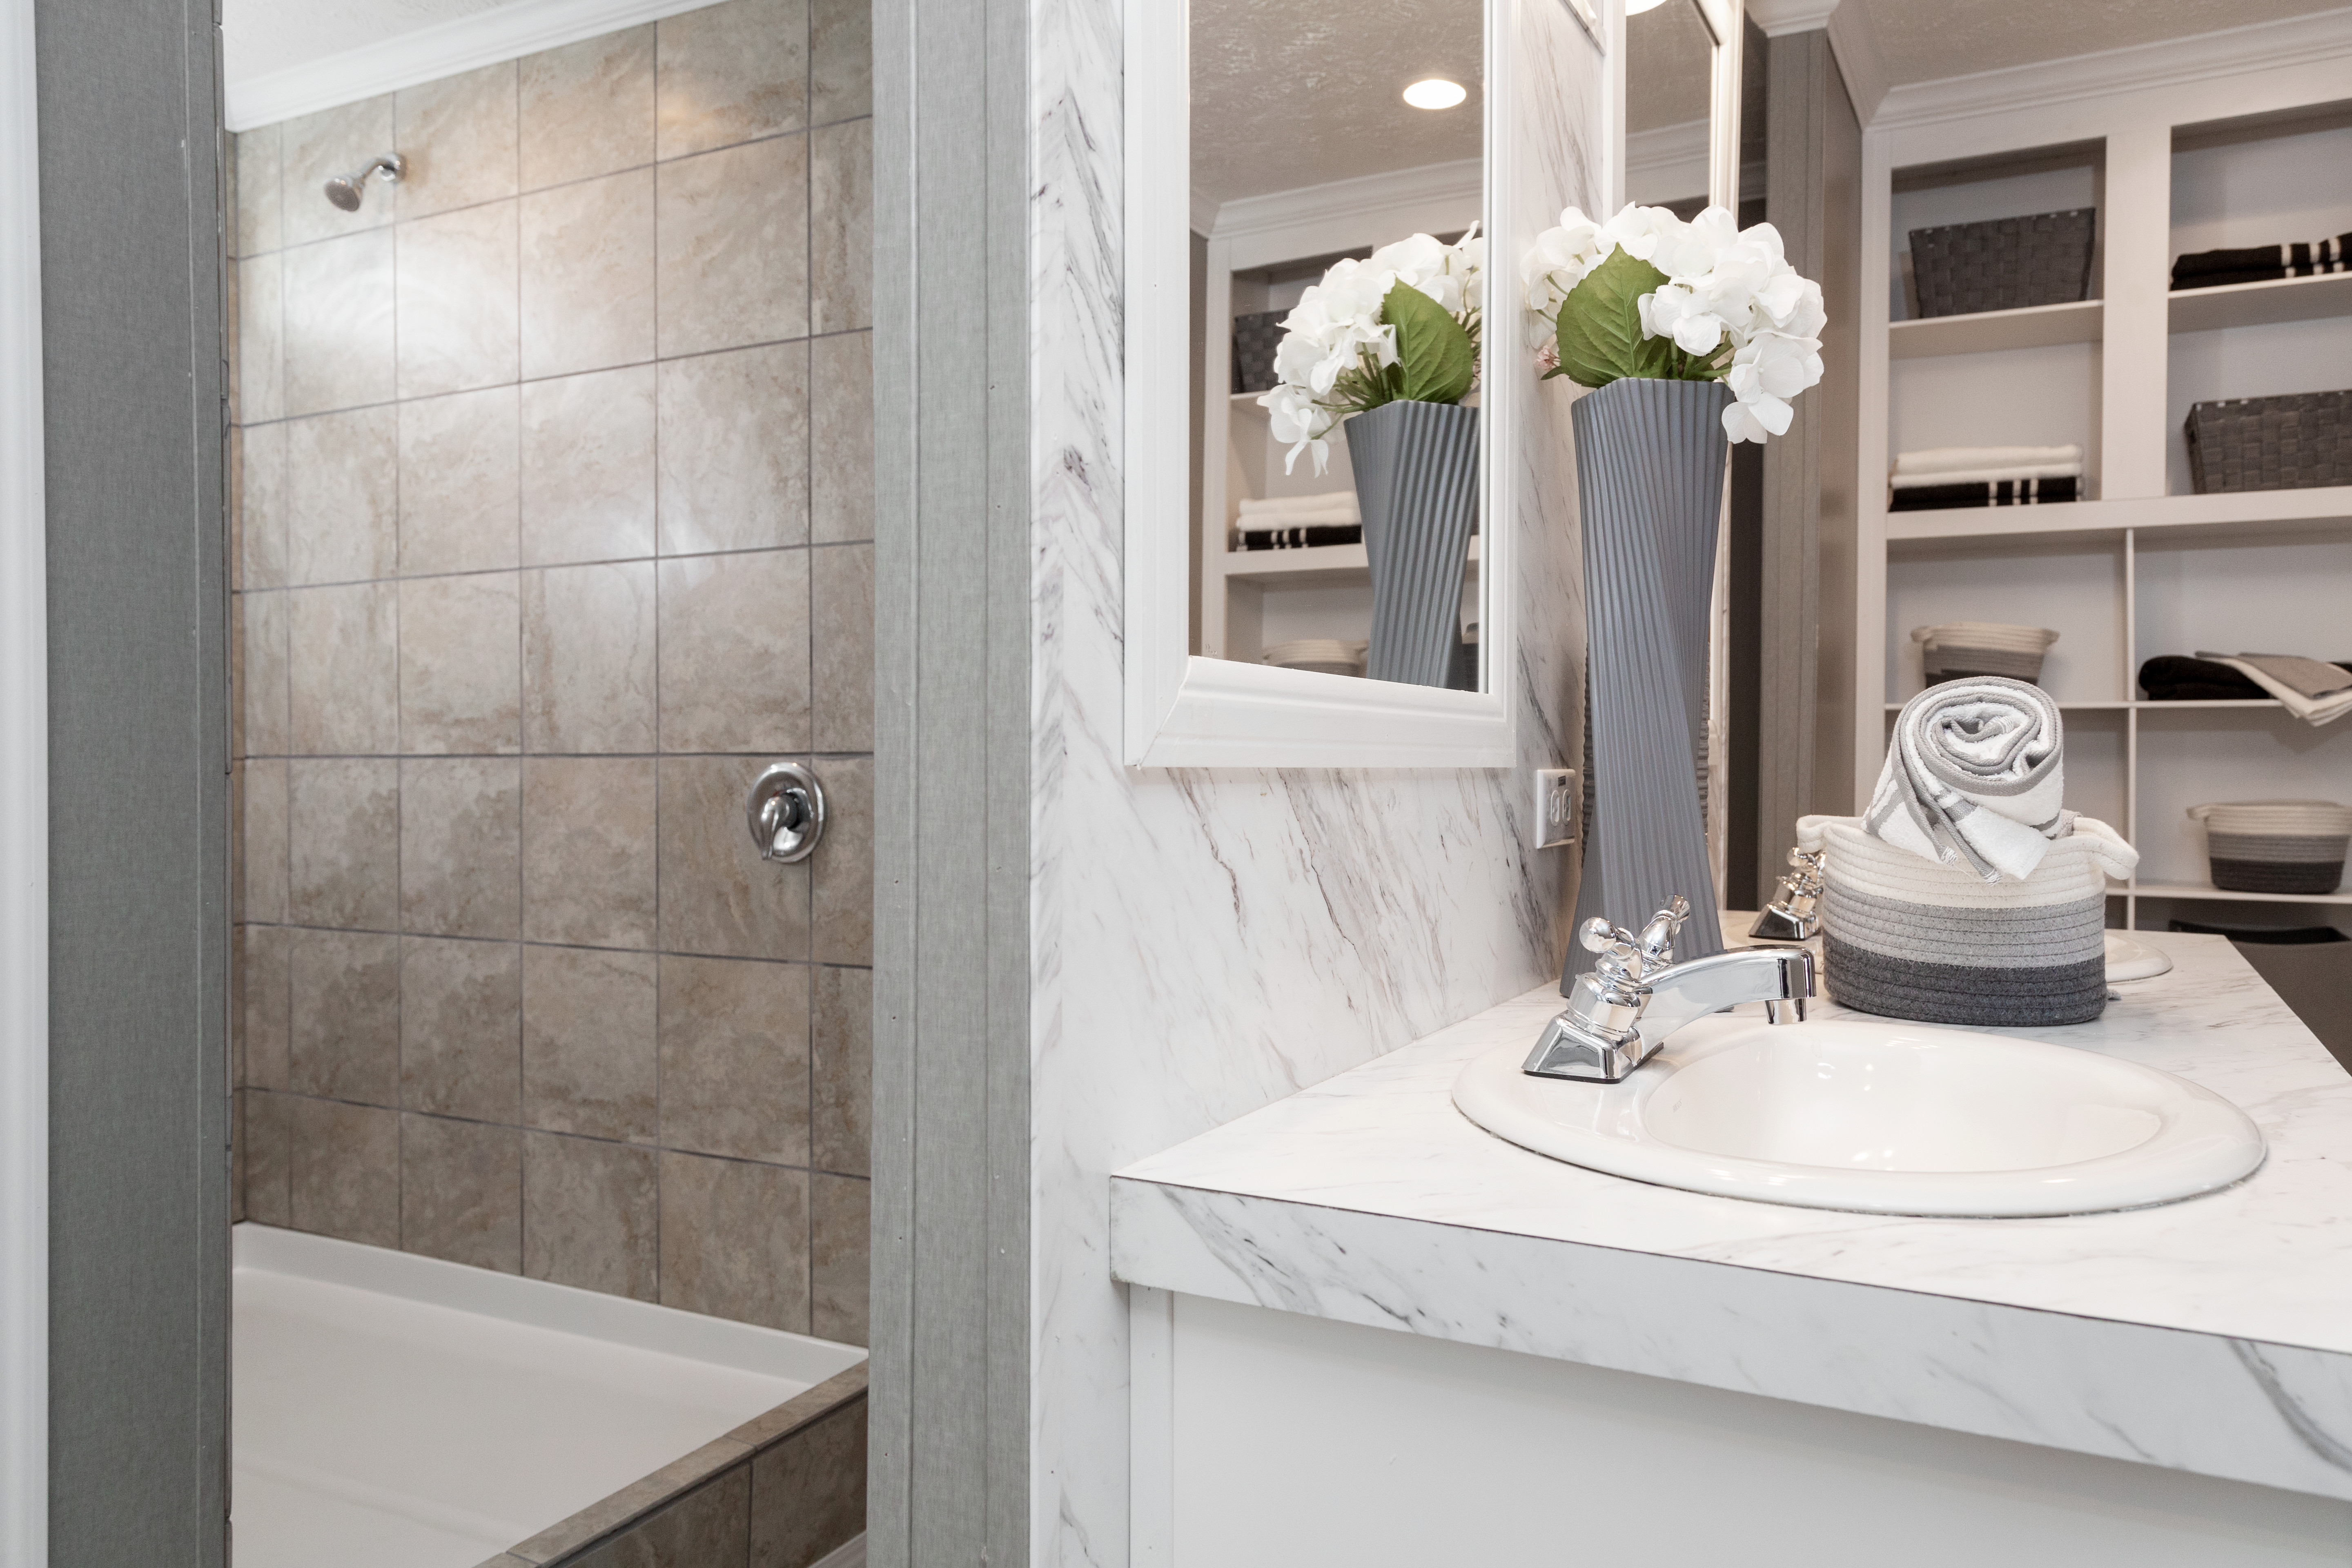 Manufactured home primary bathroom with walk in shower and double vanity